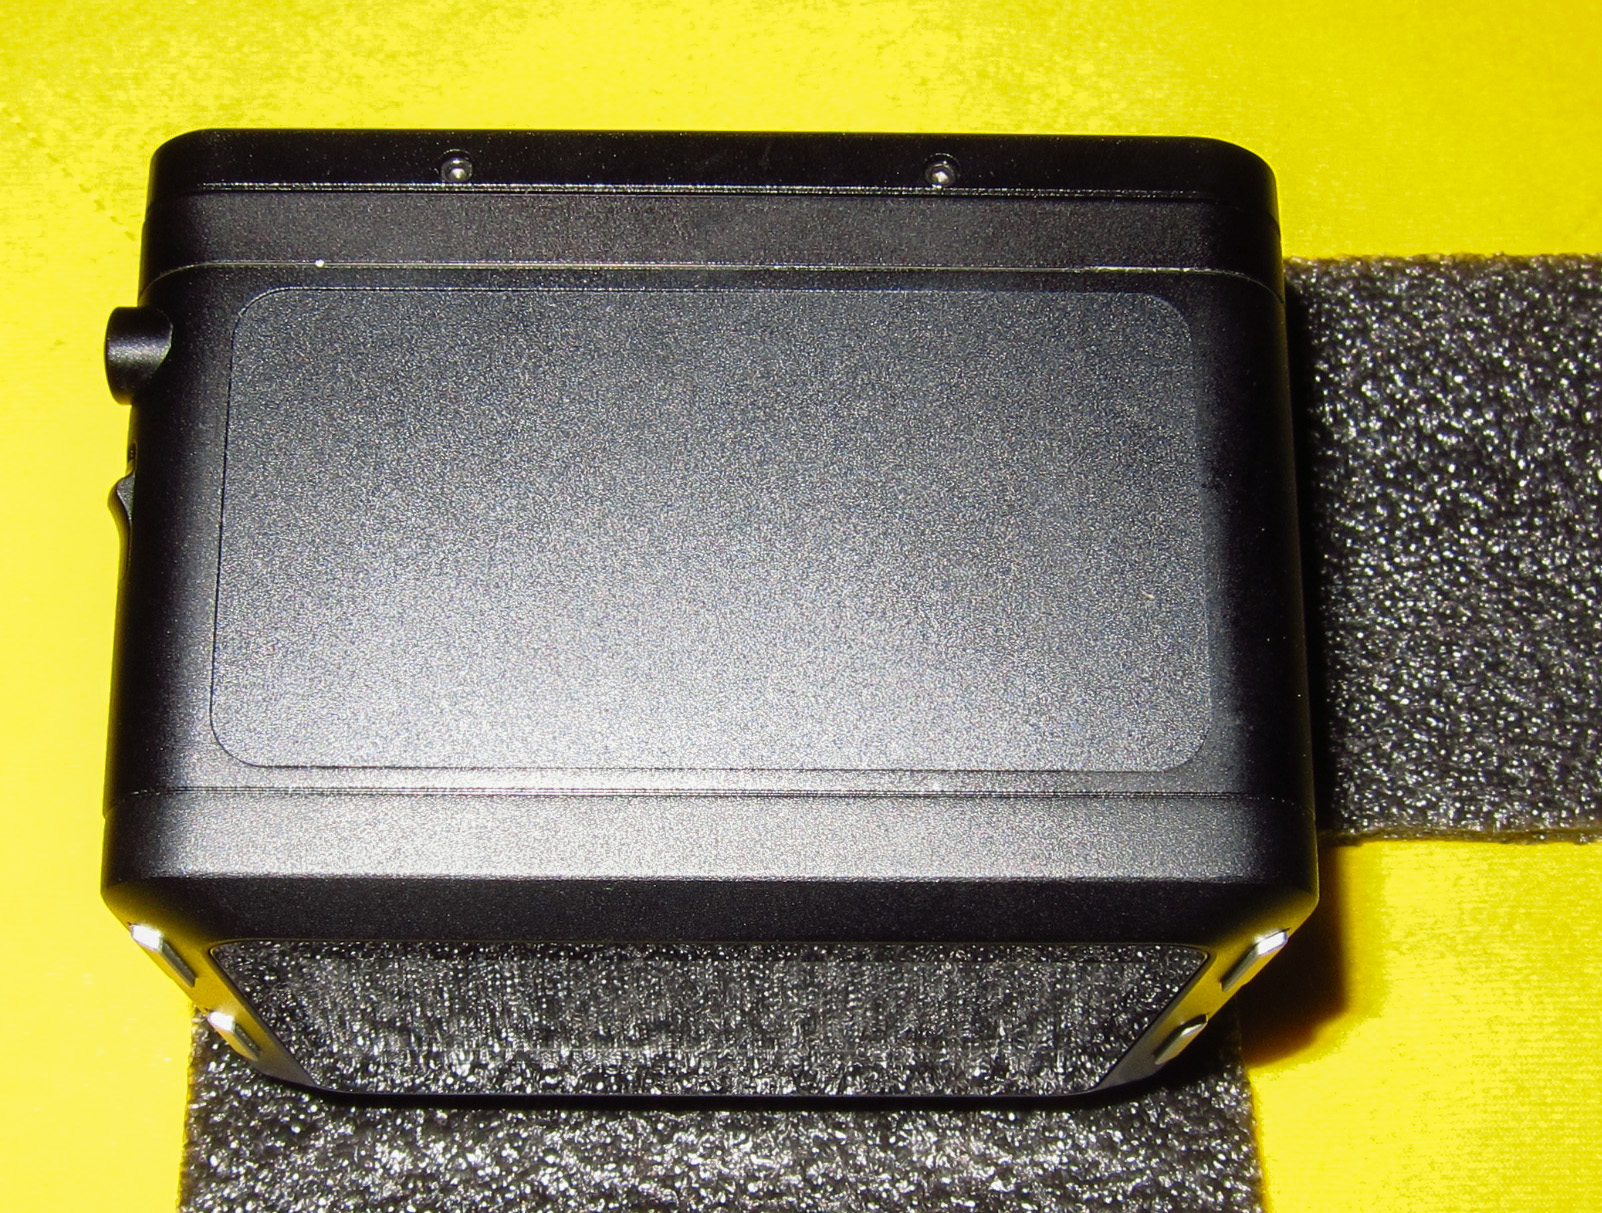 Top of an IQ260 showing the WiFi cover plate